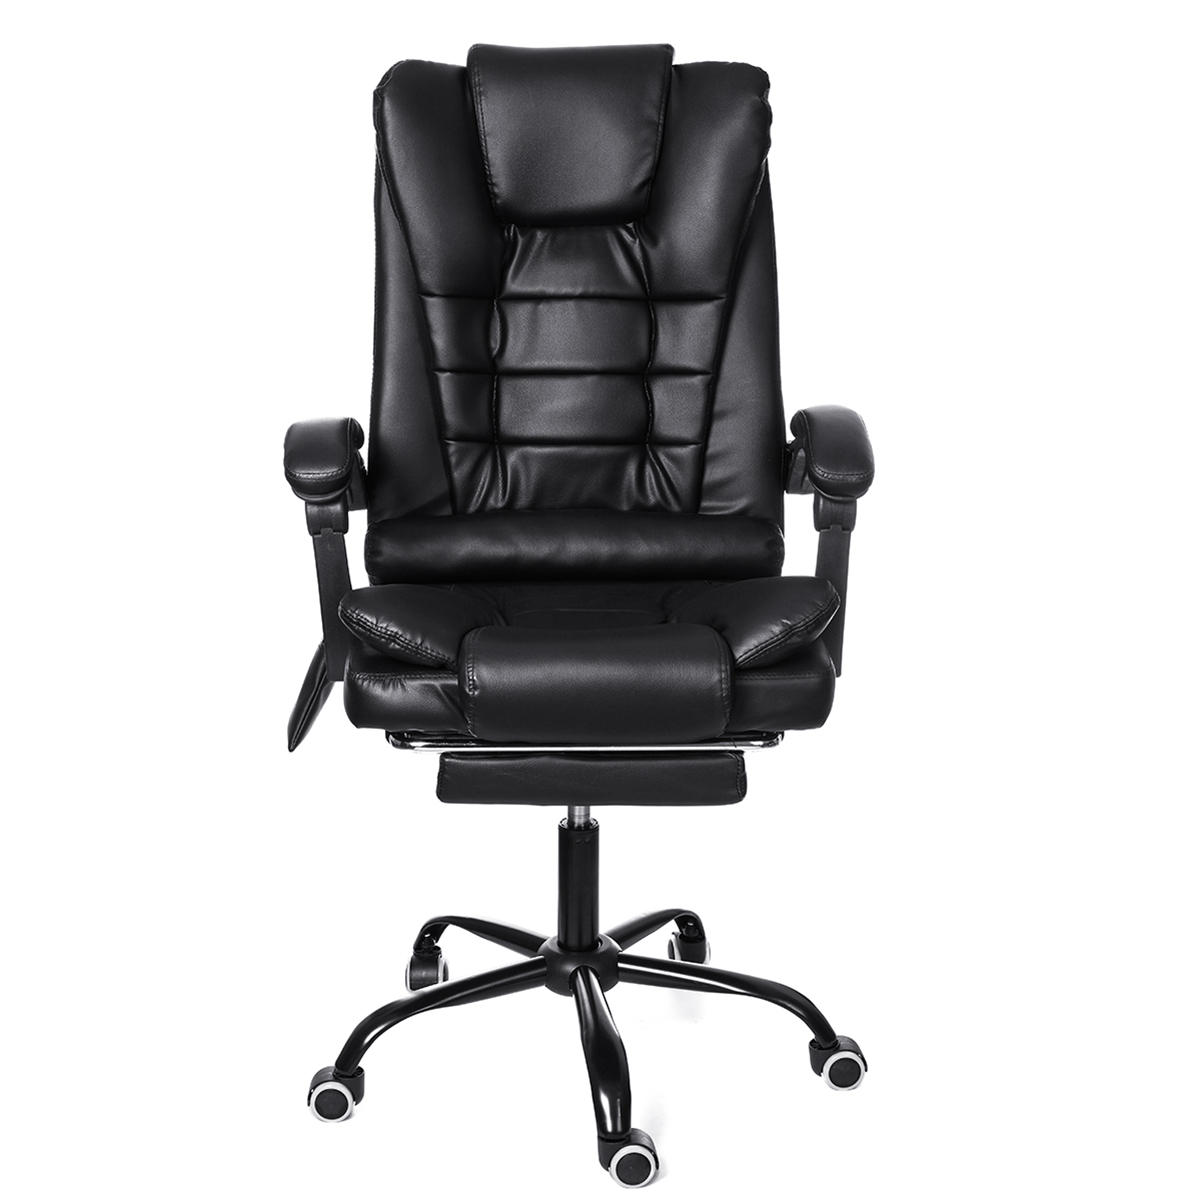 Ergonomic High Back Reclining Office Boss Chair Adjustable Height Rotating Lift Chair PU Leather Gaming Chair Laptop Desk Chair with Footrest and Phone Bag Coupon Code and price! - $93